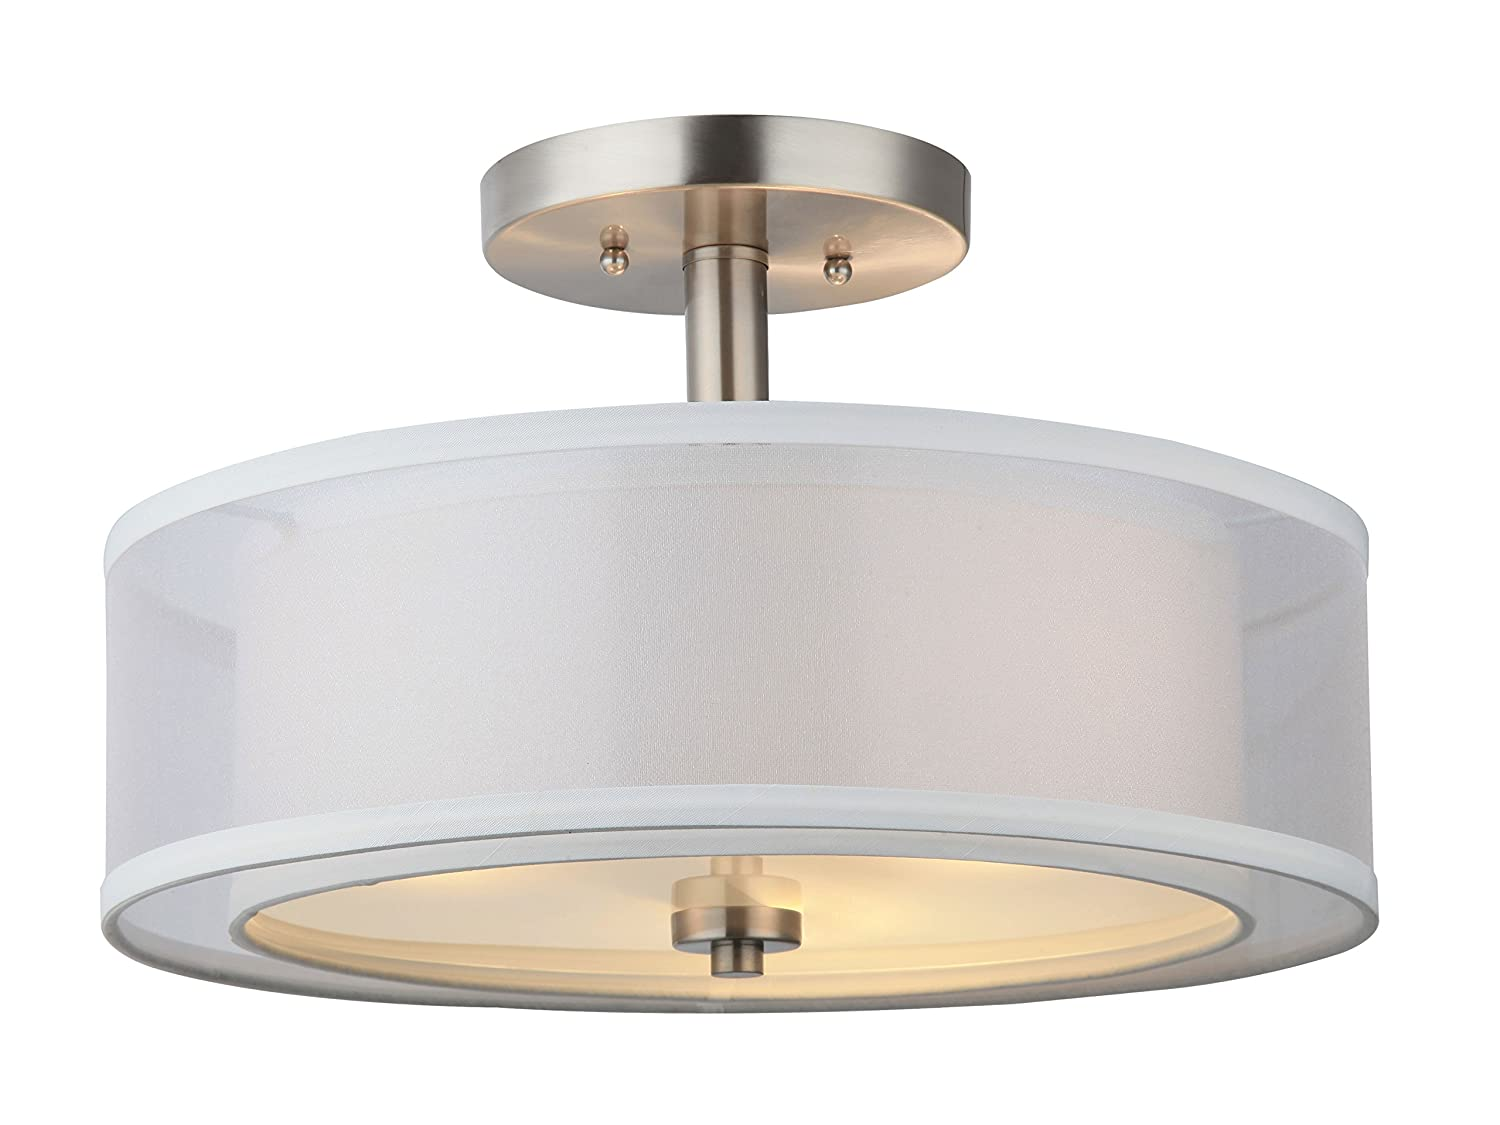 Hardware House LLC 20-7812# 3-Light Round Semi Flush Light Satin Nickel